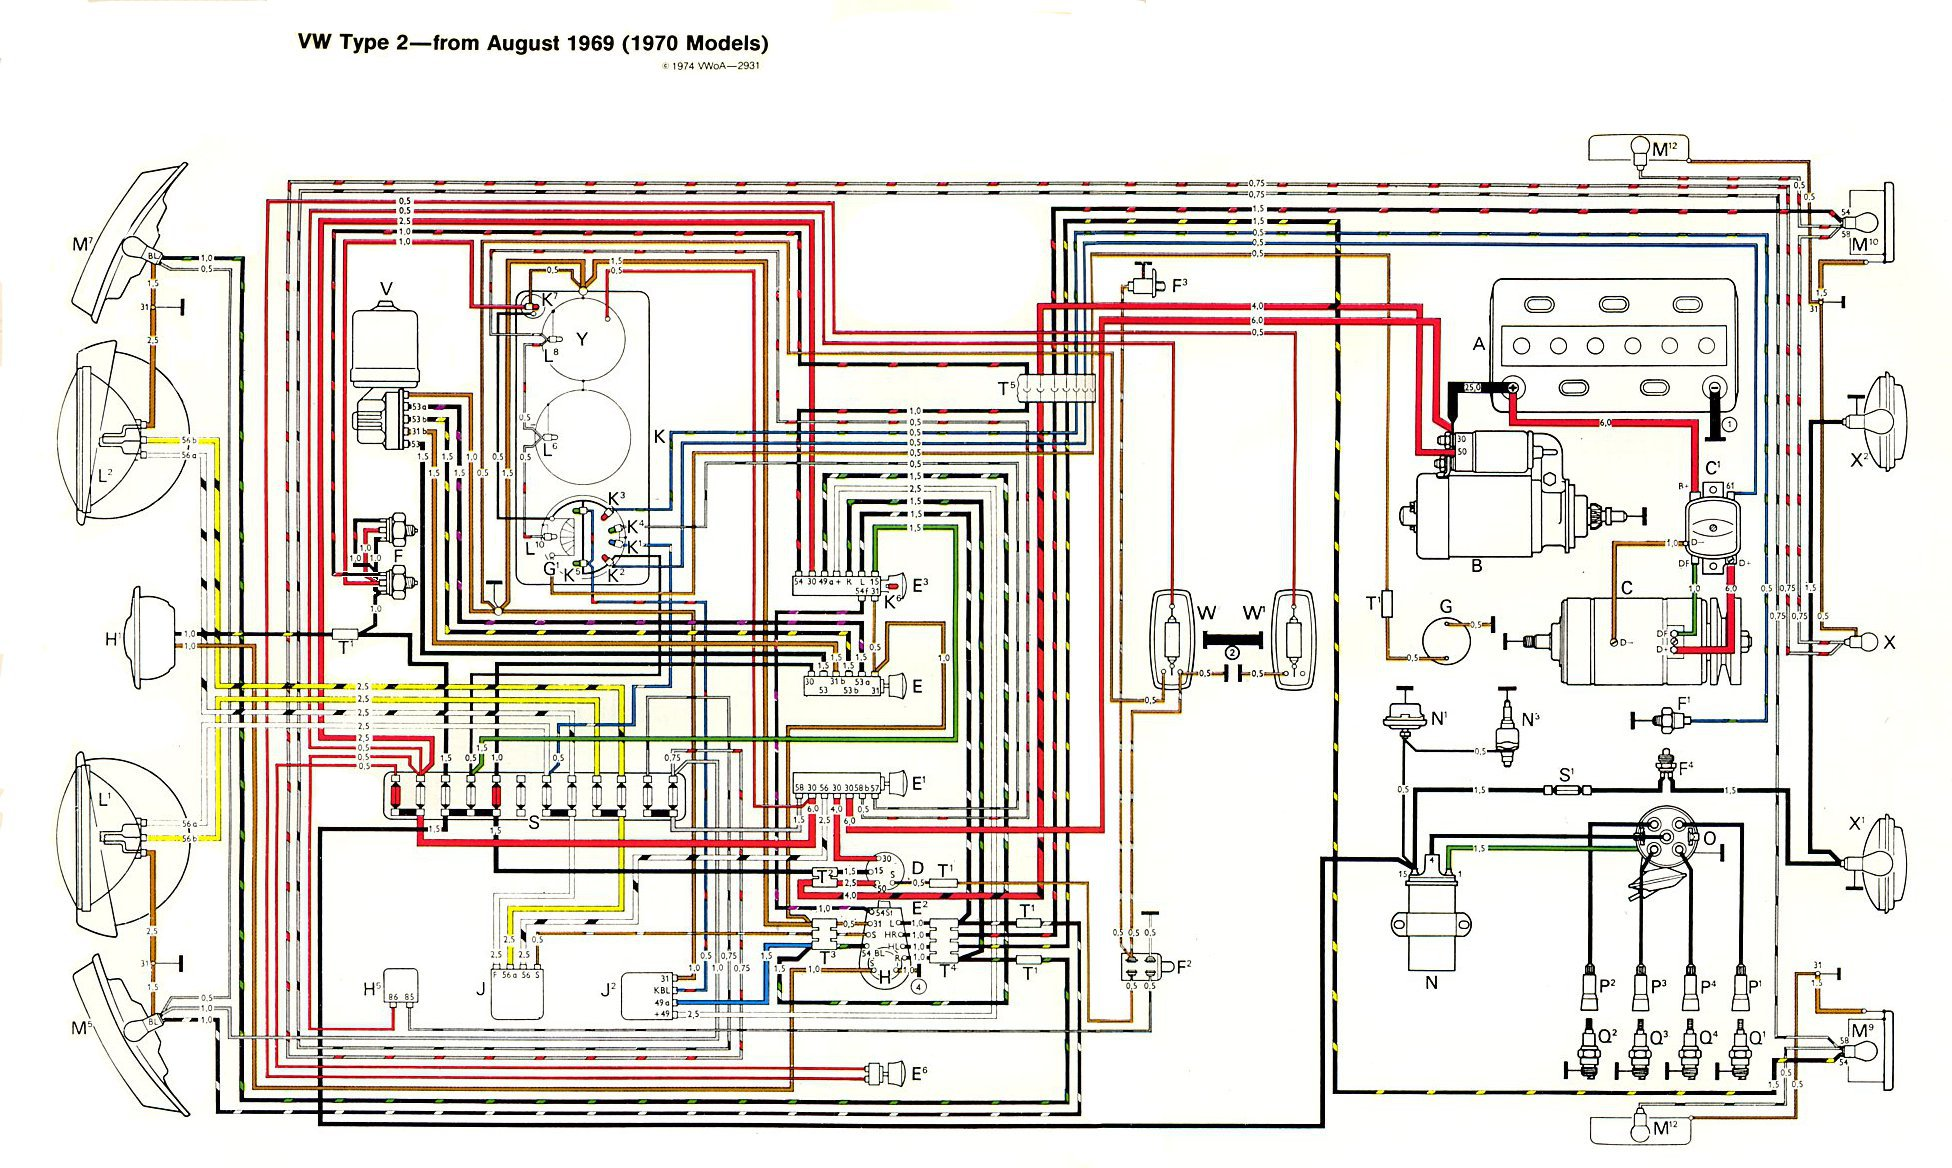 baybus_70 thesamba com type 2 wiring diagrams Wiring Harness Diagram at creativeand.co